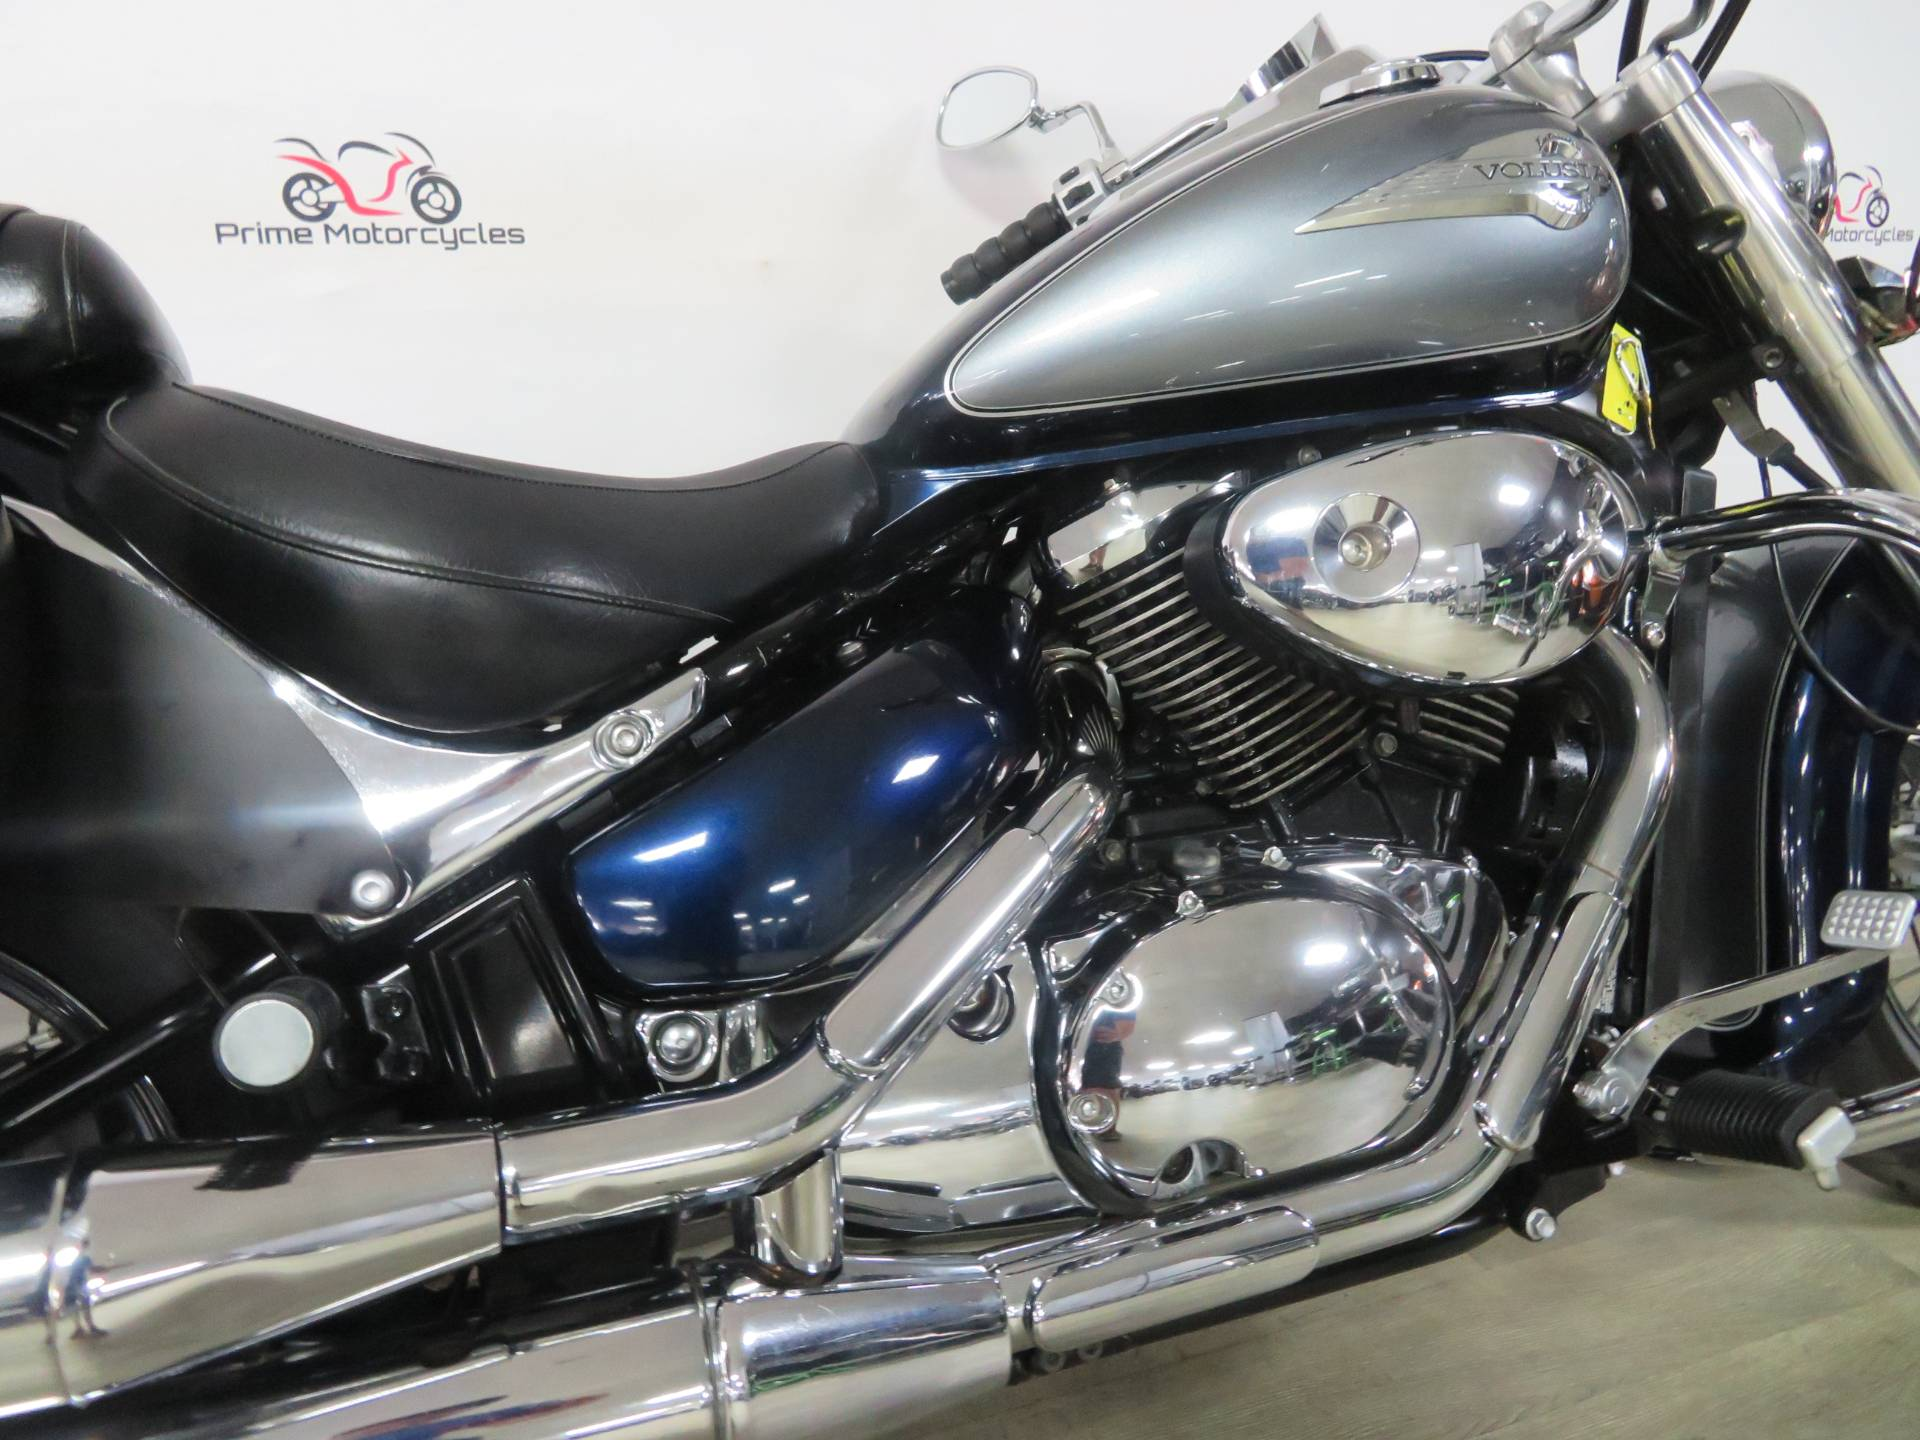 2004 Suzuki Intruder Volusia 800 in Sanford, Florida - Photo 21